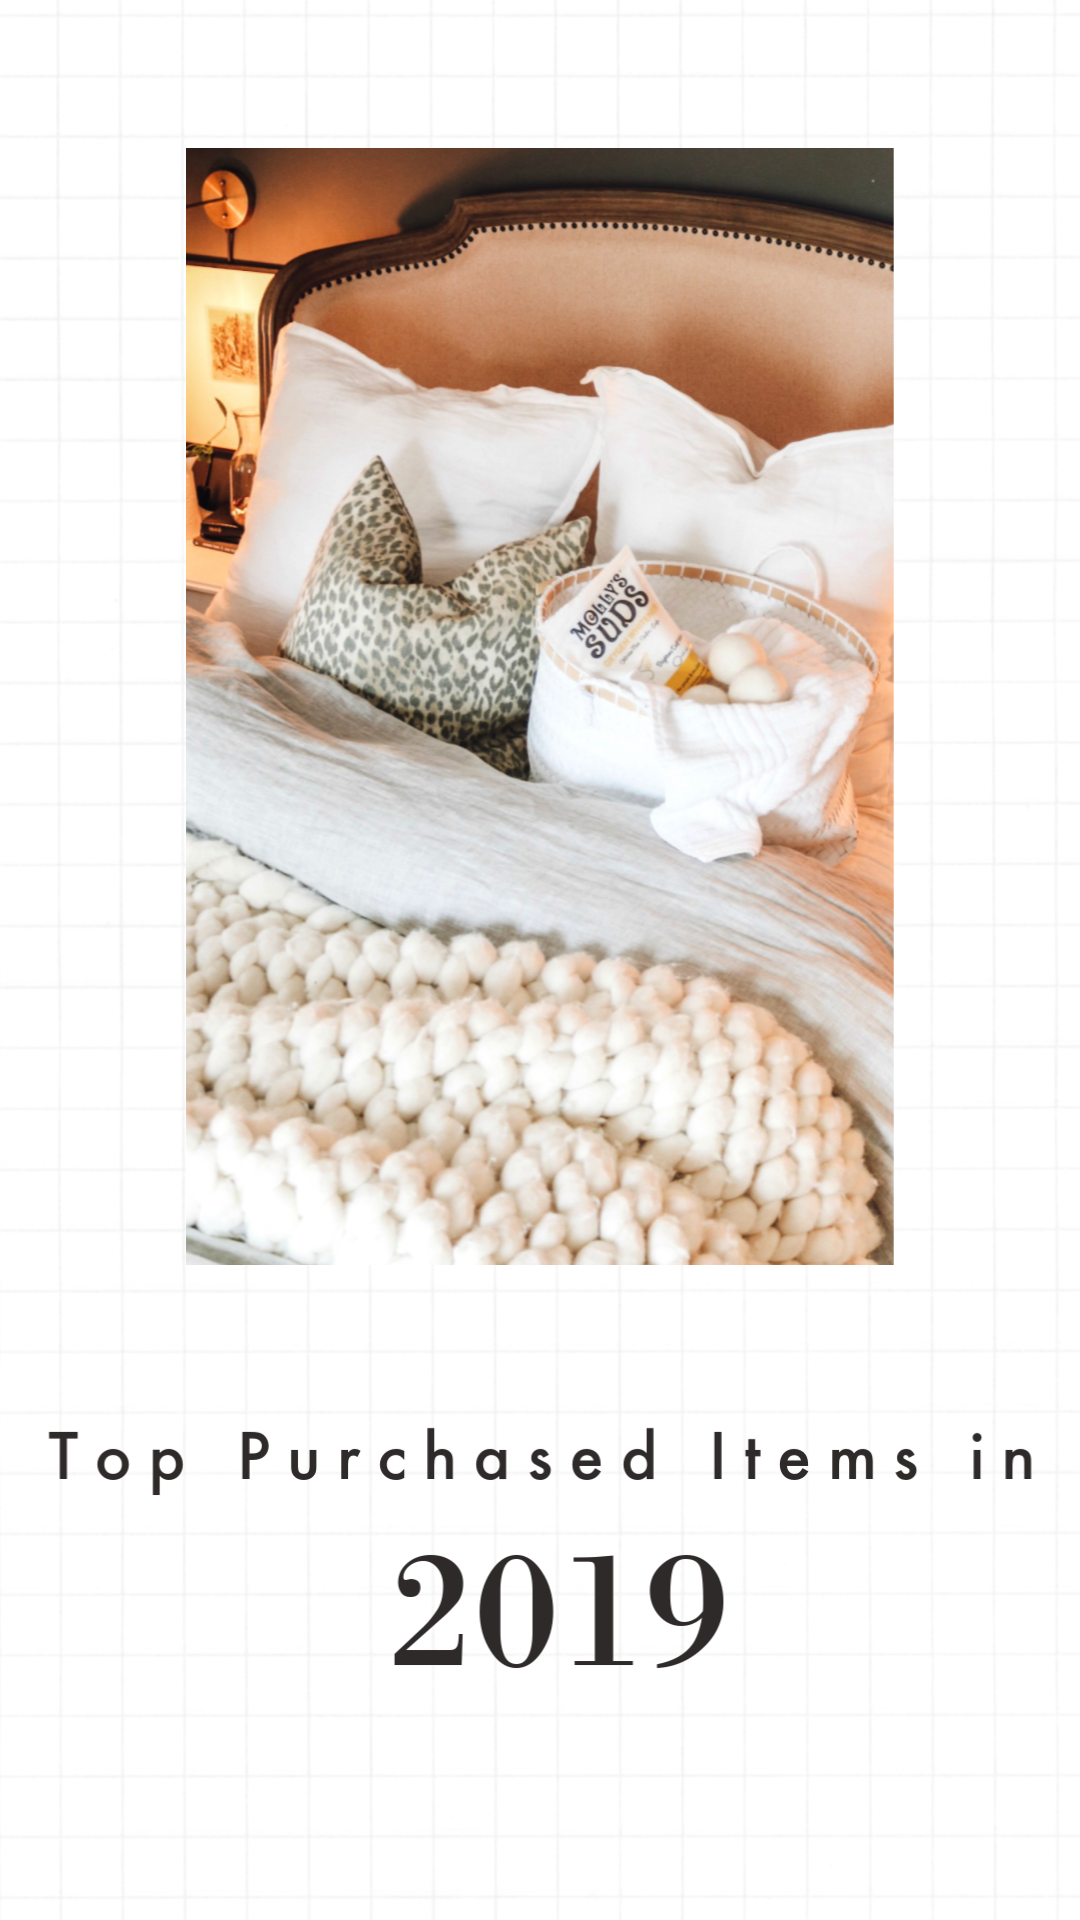 Top Blog Posts in 2019 and Top Sold Items